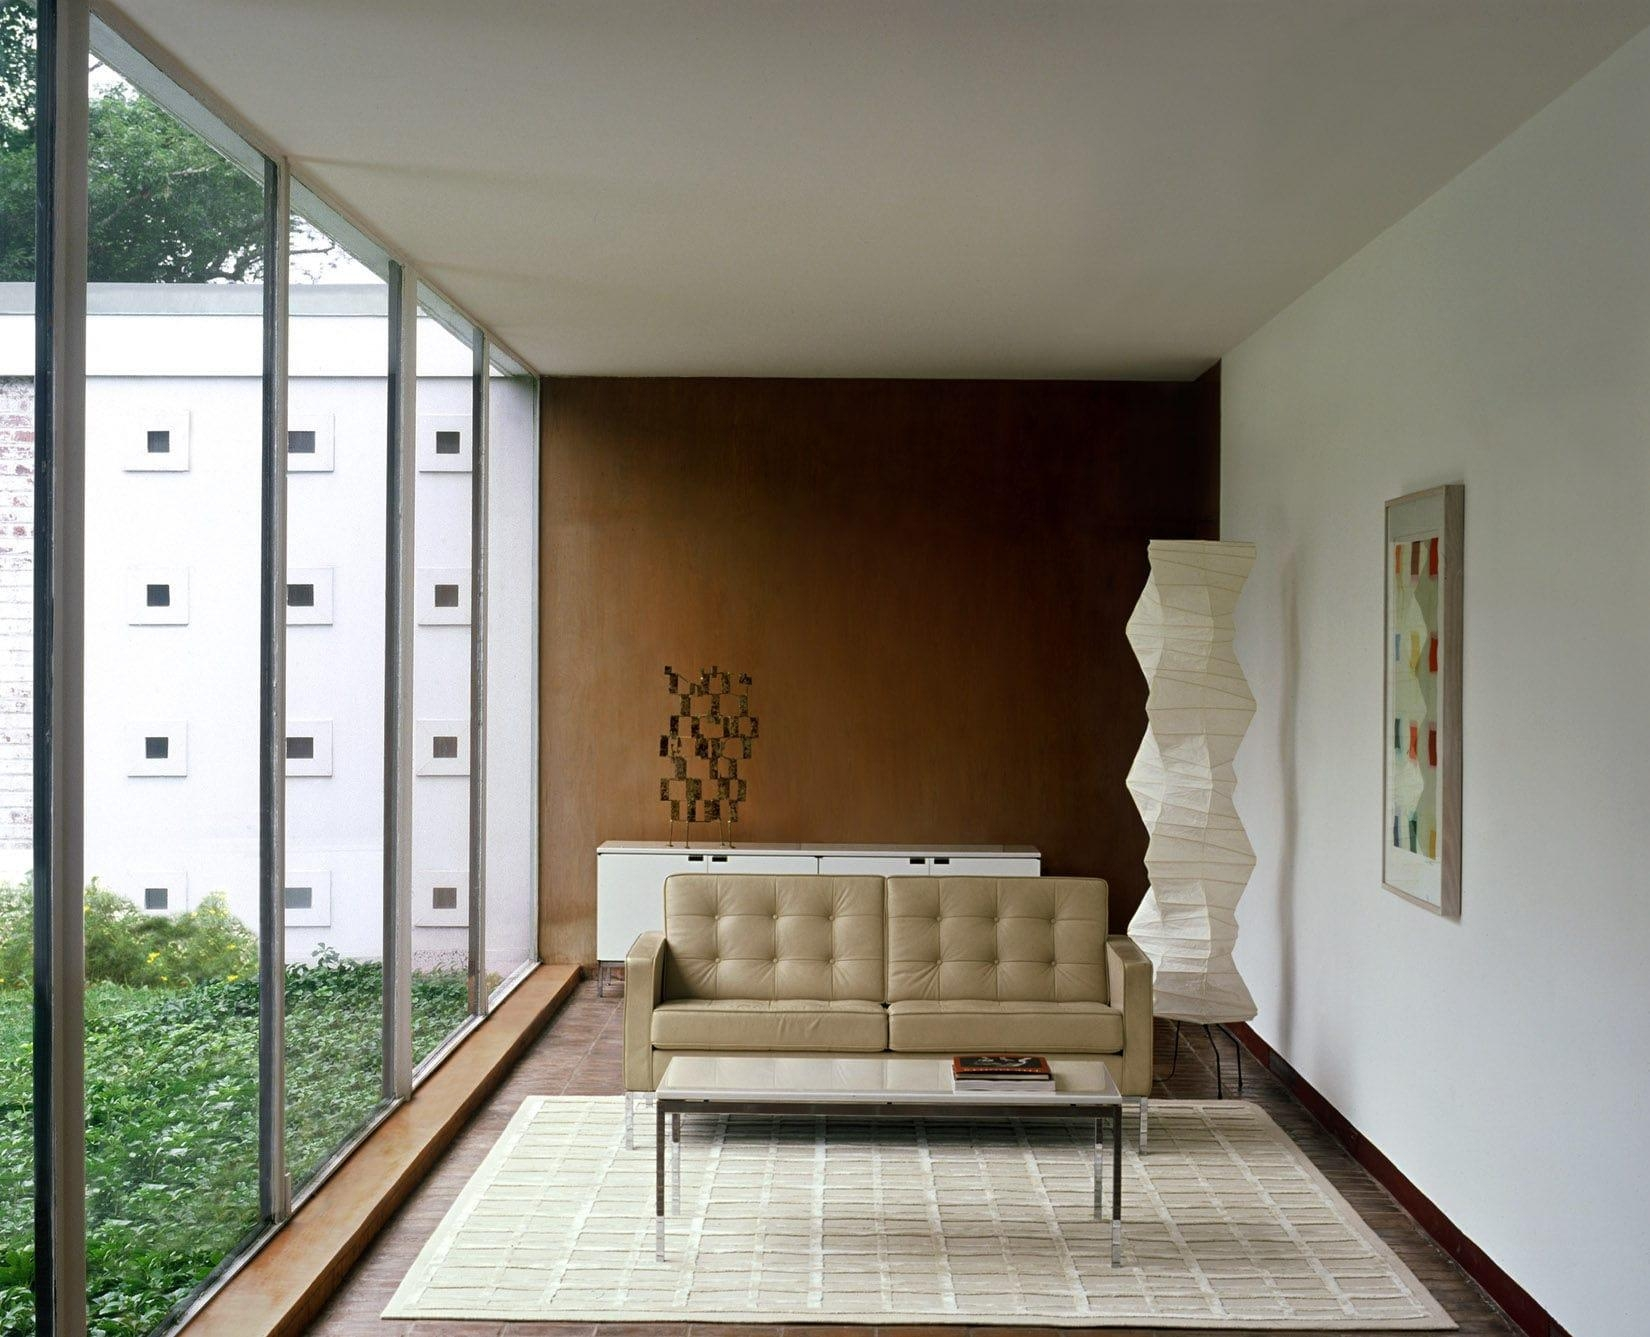 Contemporary Sofa / Leather / Fabric /florence Knoll – Knoll Pertaining To Florence Knoll Fabric Sofas (Image 3 of 20)